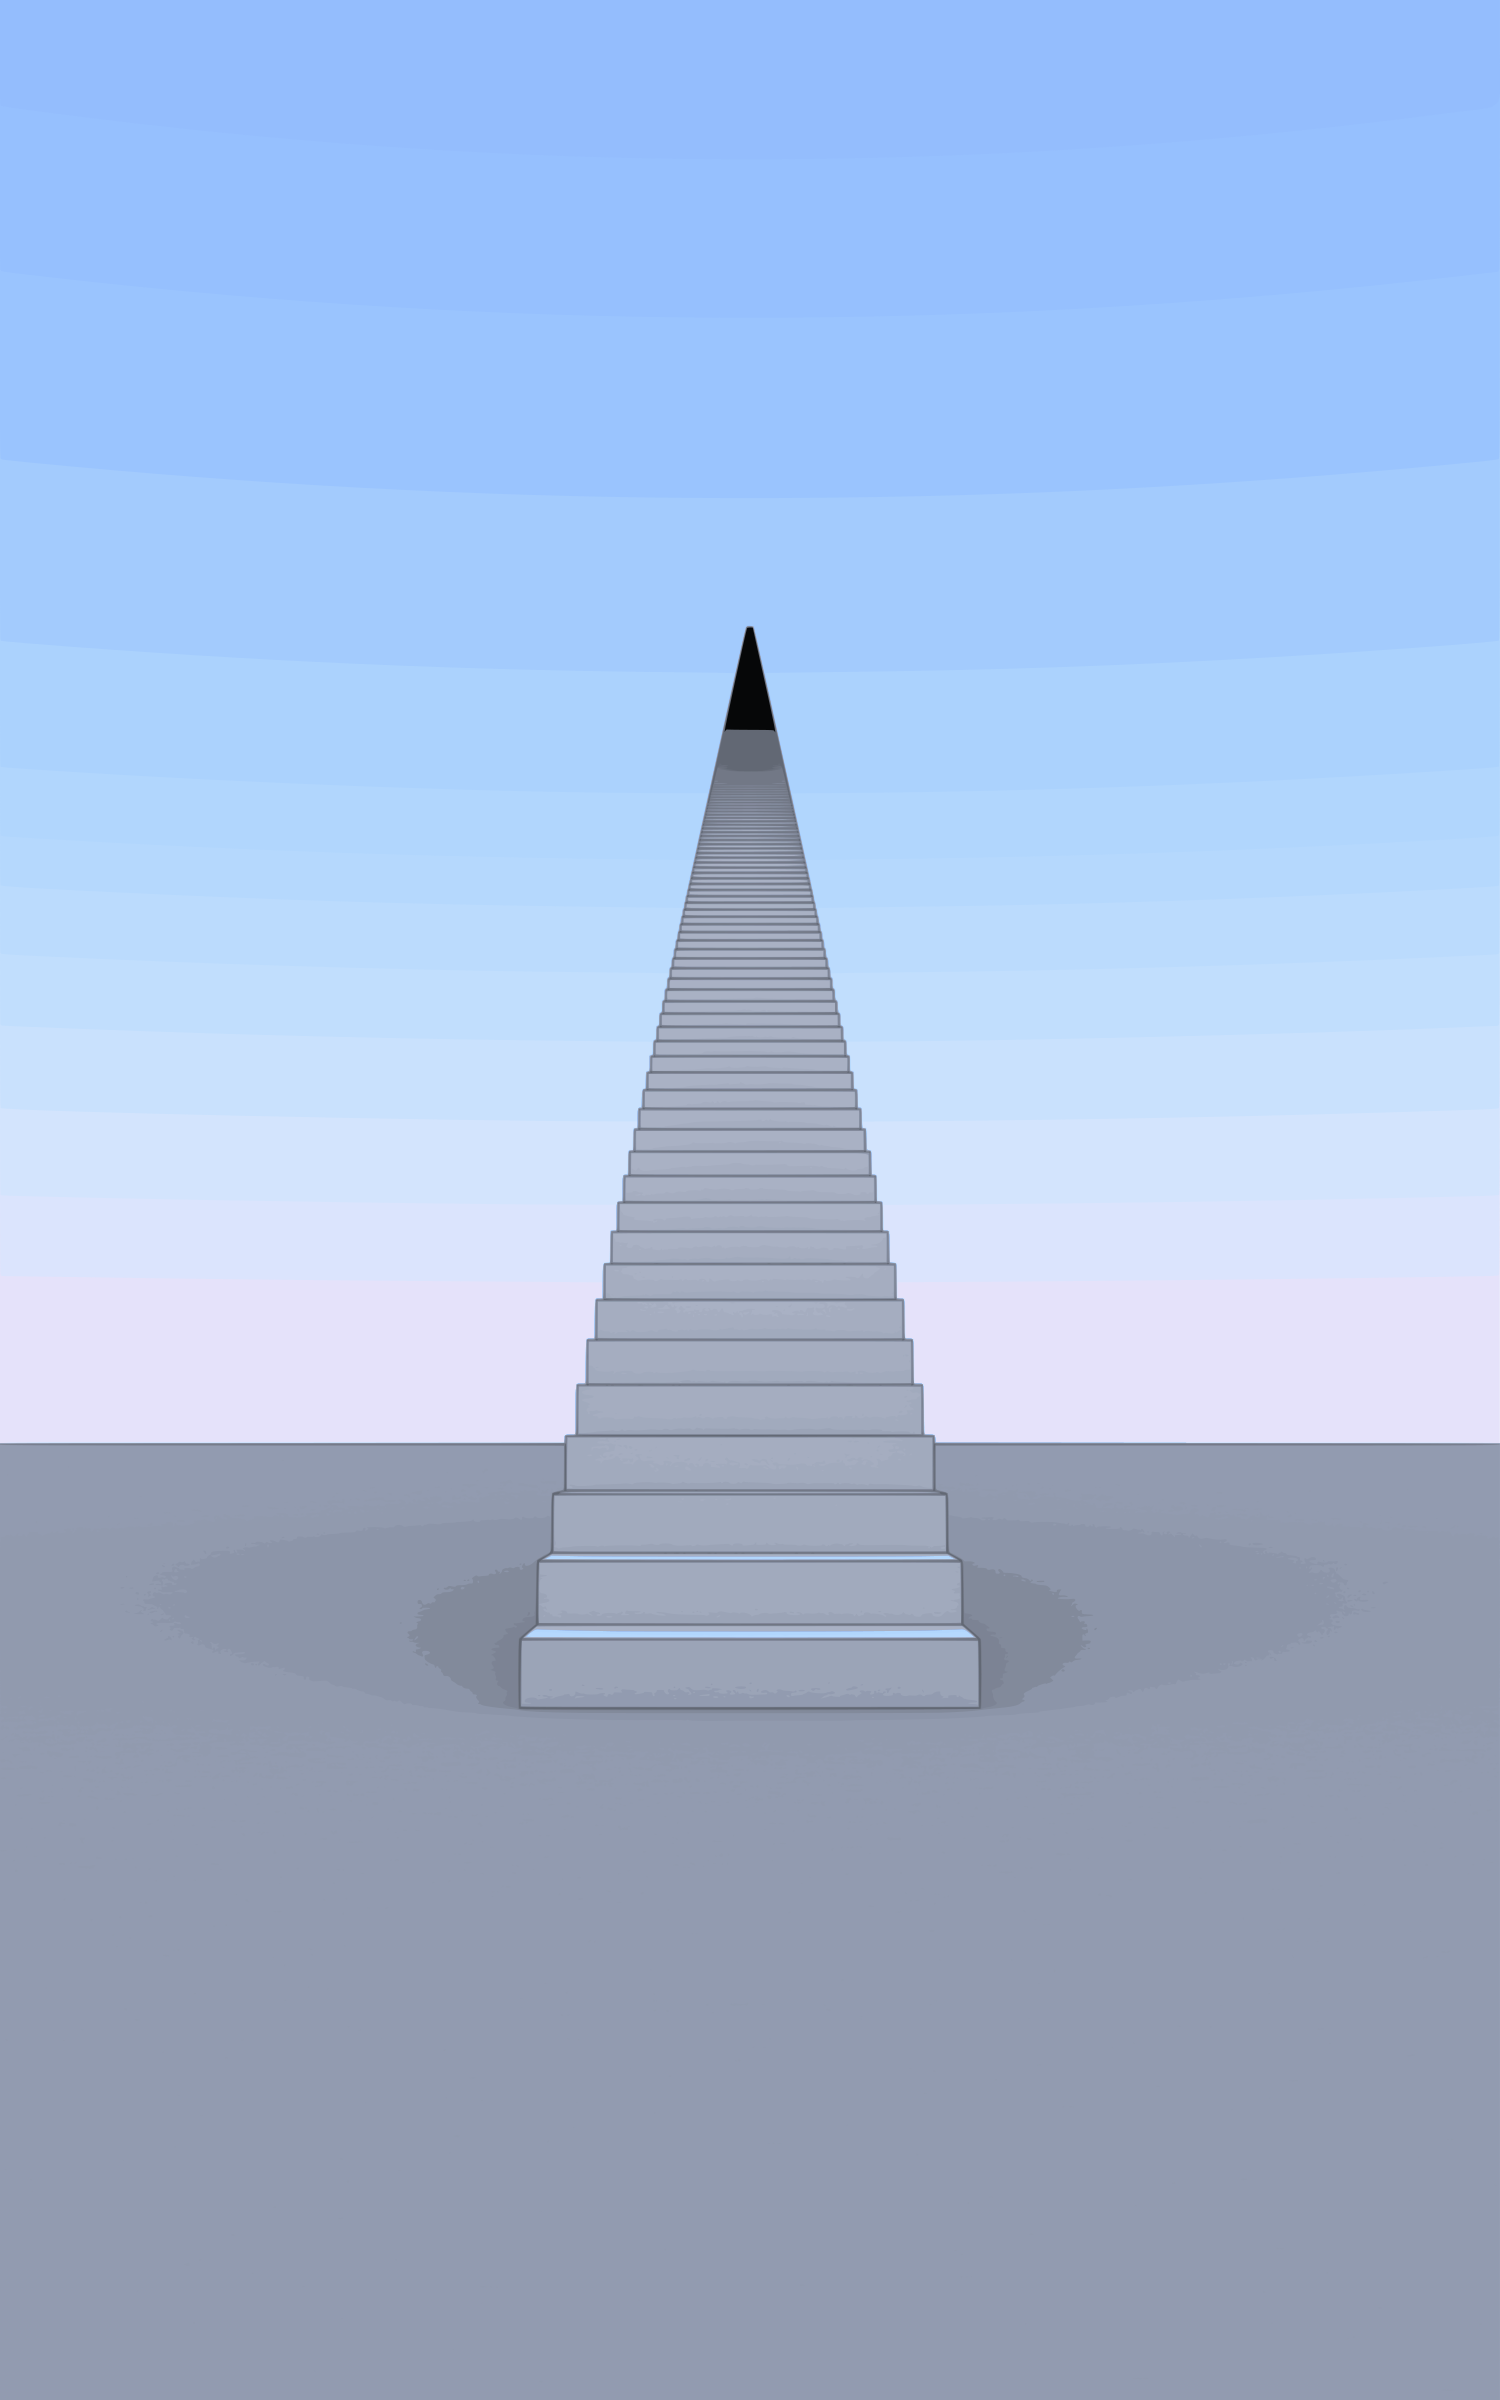 1000 Stairs vectorized (higher resolution) by photofree.ga